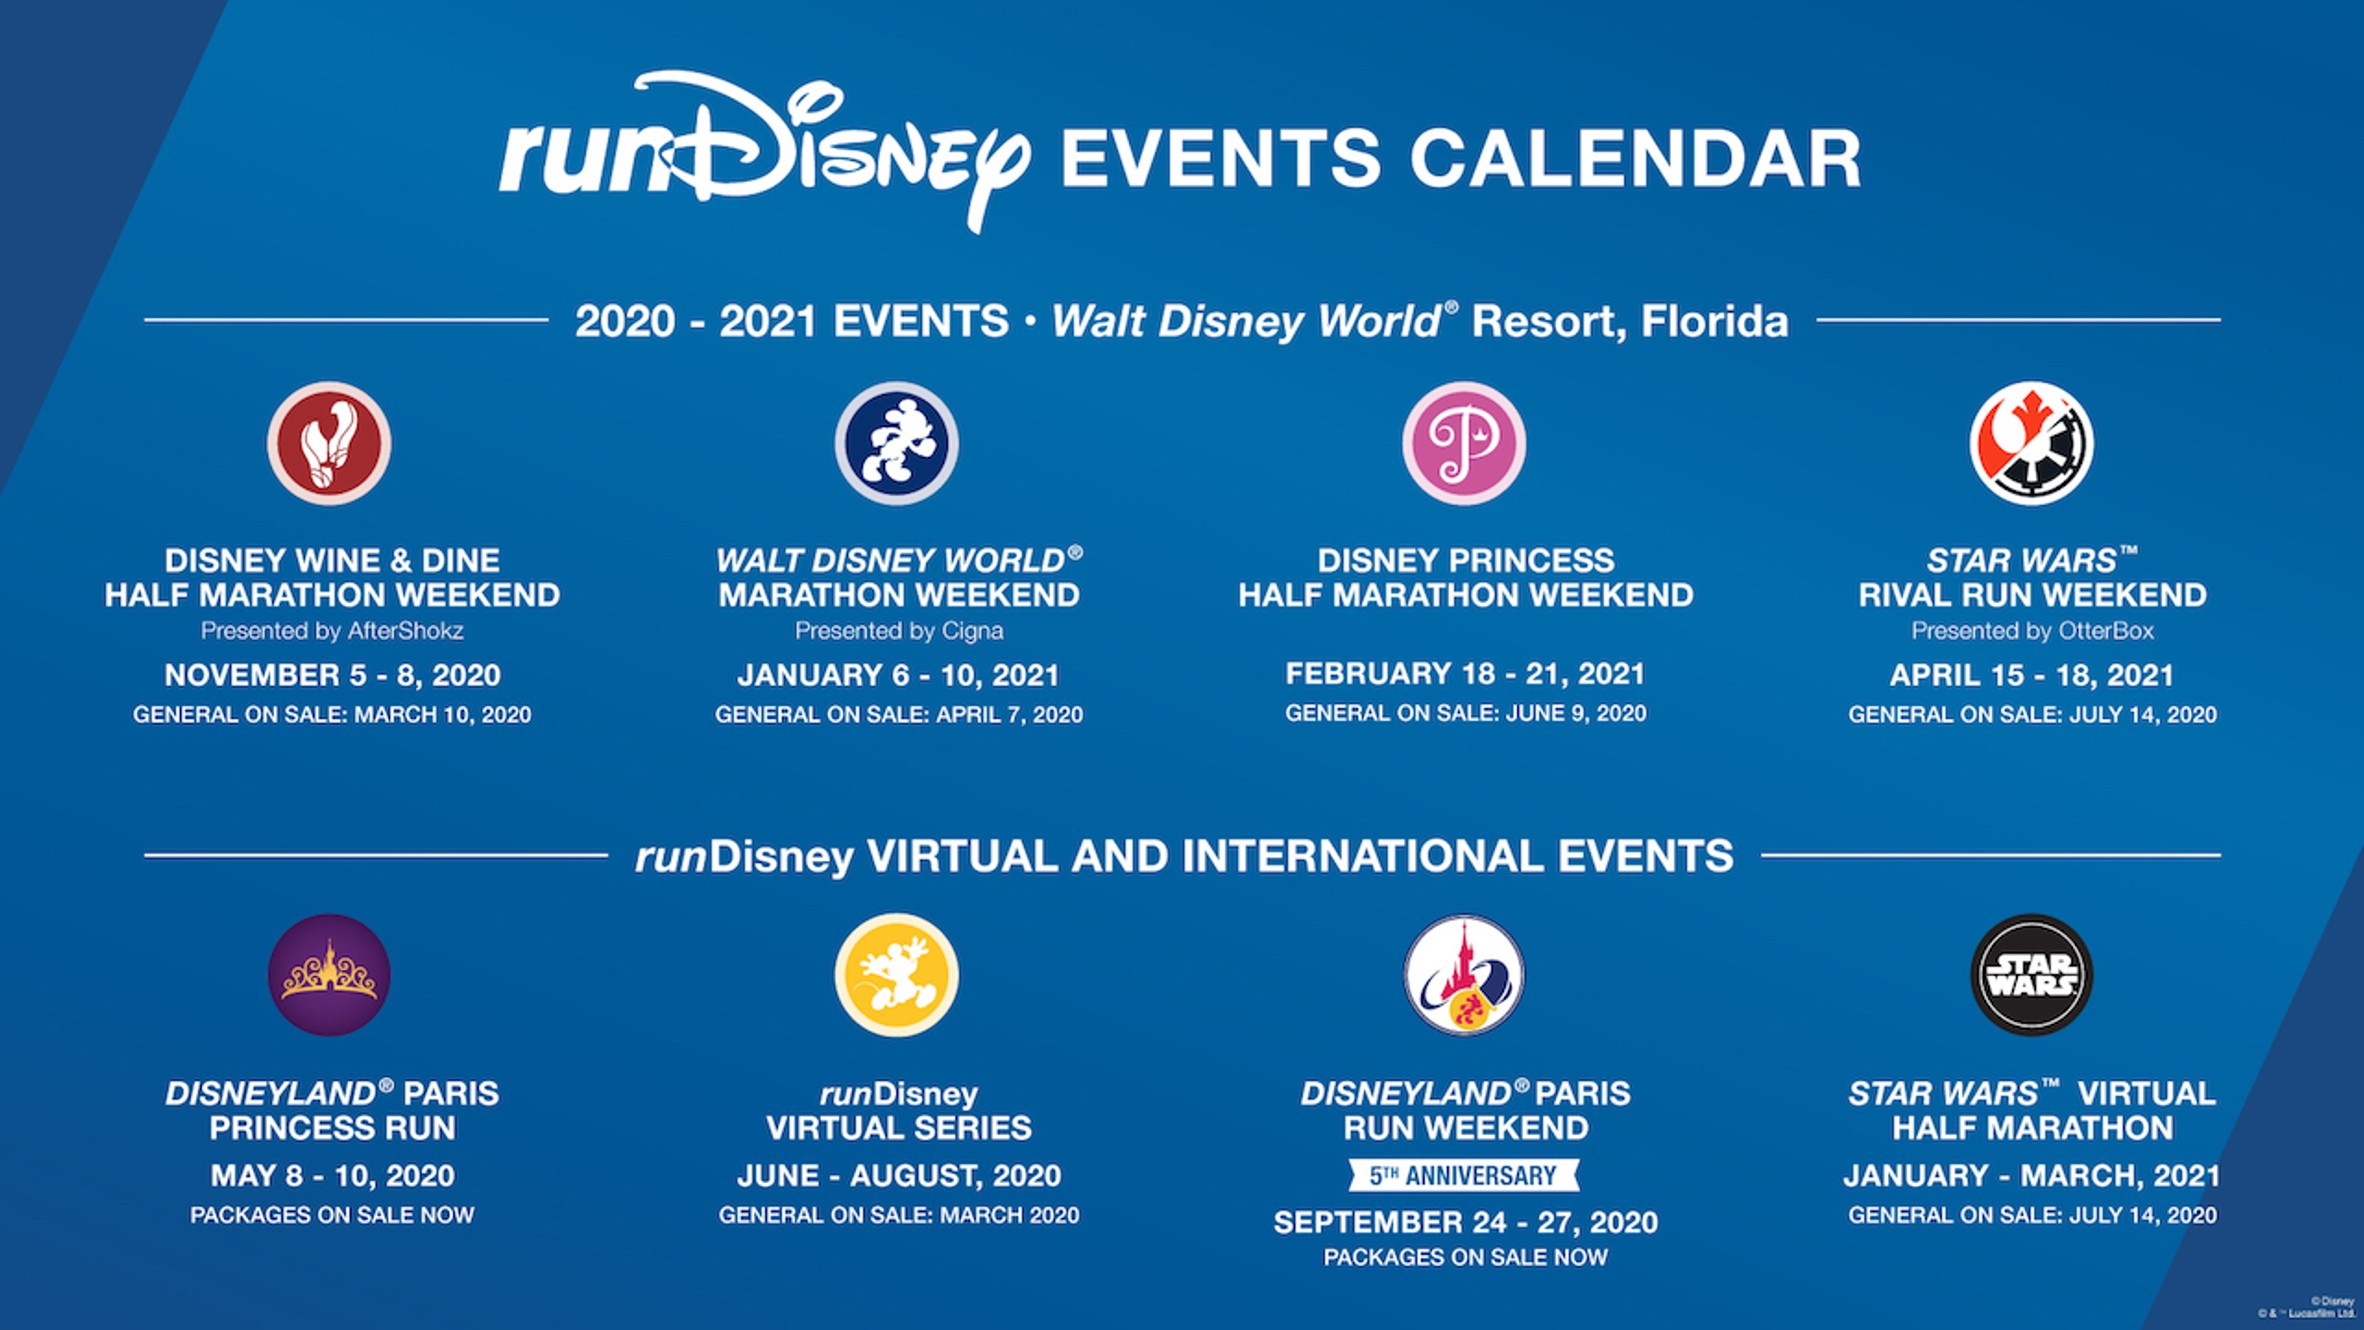 Rundisney Race Calendar For 2020 2021 Intended For Cape May Calendar Of Events 2021